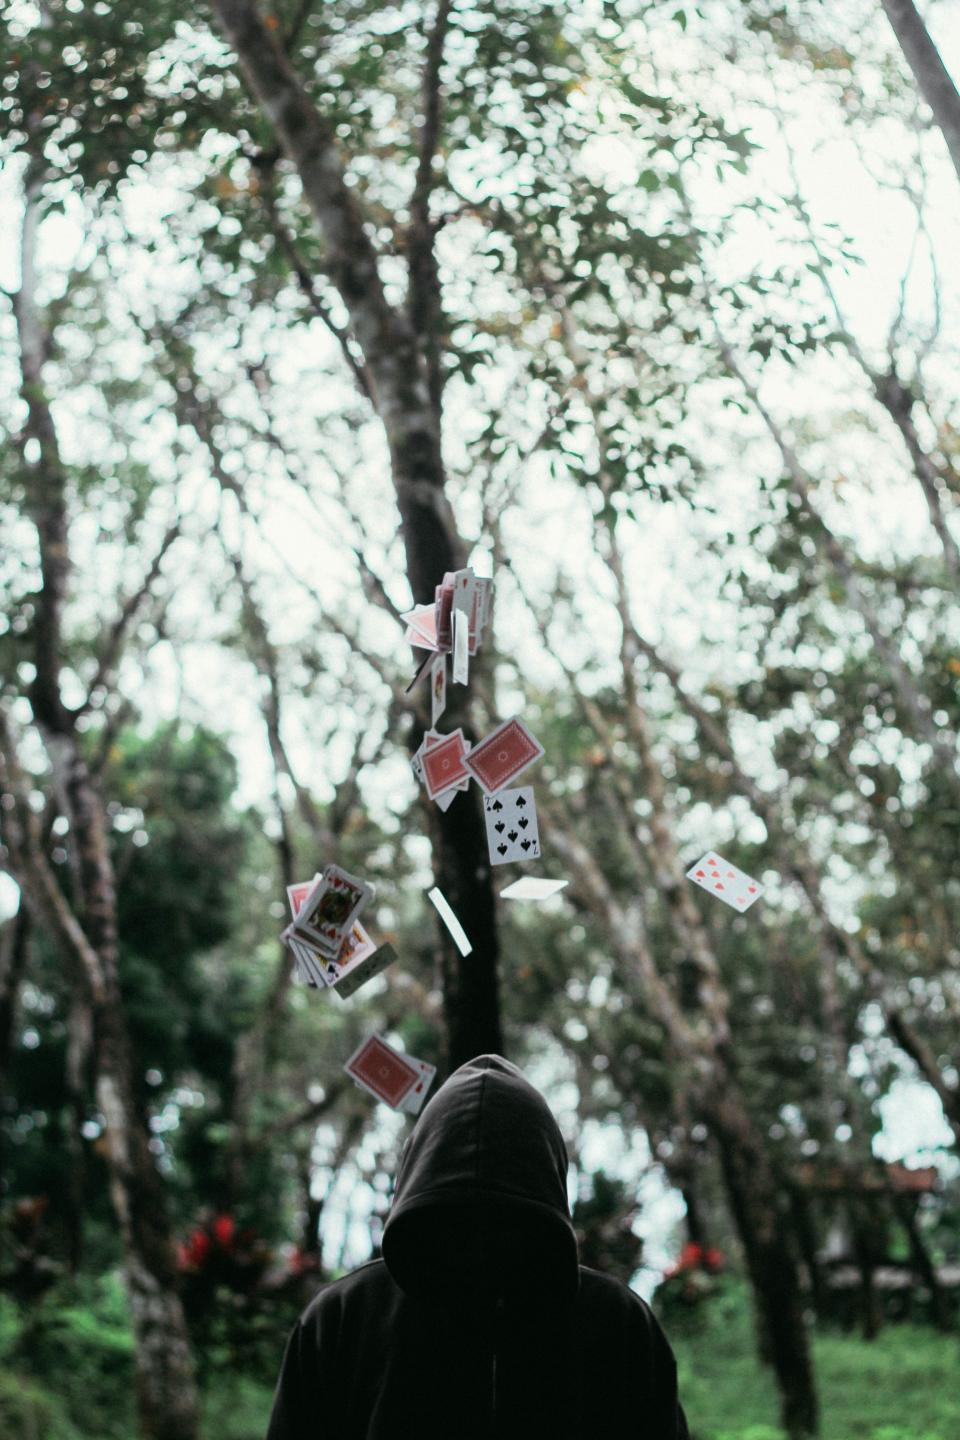 cards, man, hoodie, trees, bokeh, back, guy, forest, magician, blur, nature